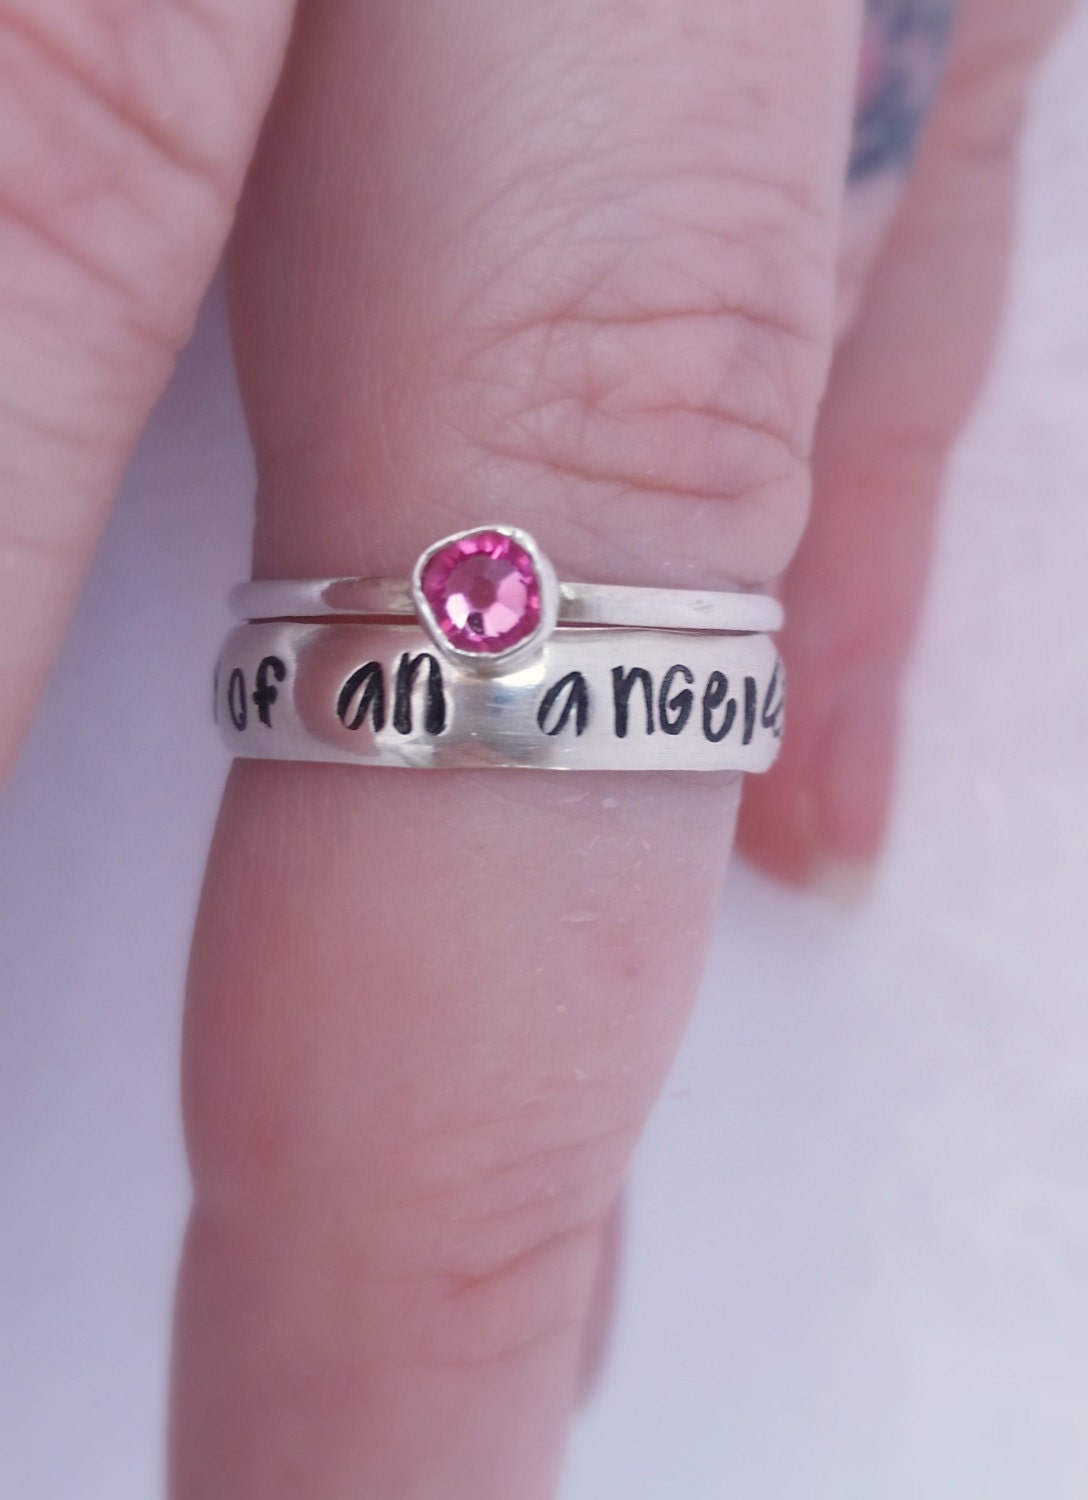 Miscarriage Ring Mommy Of An Angel Ring Baby Loss Infant